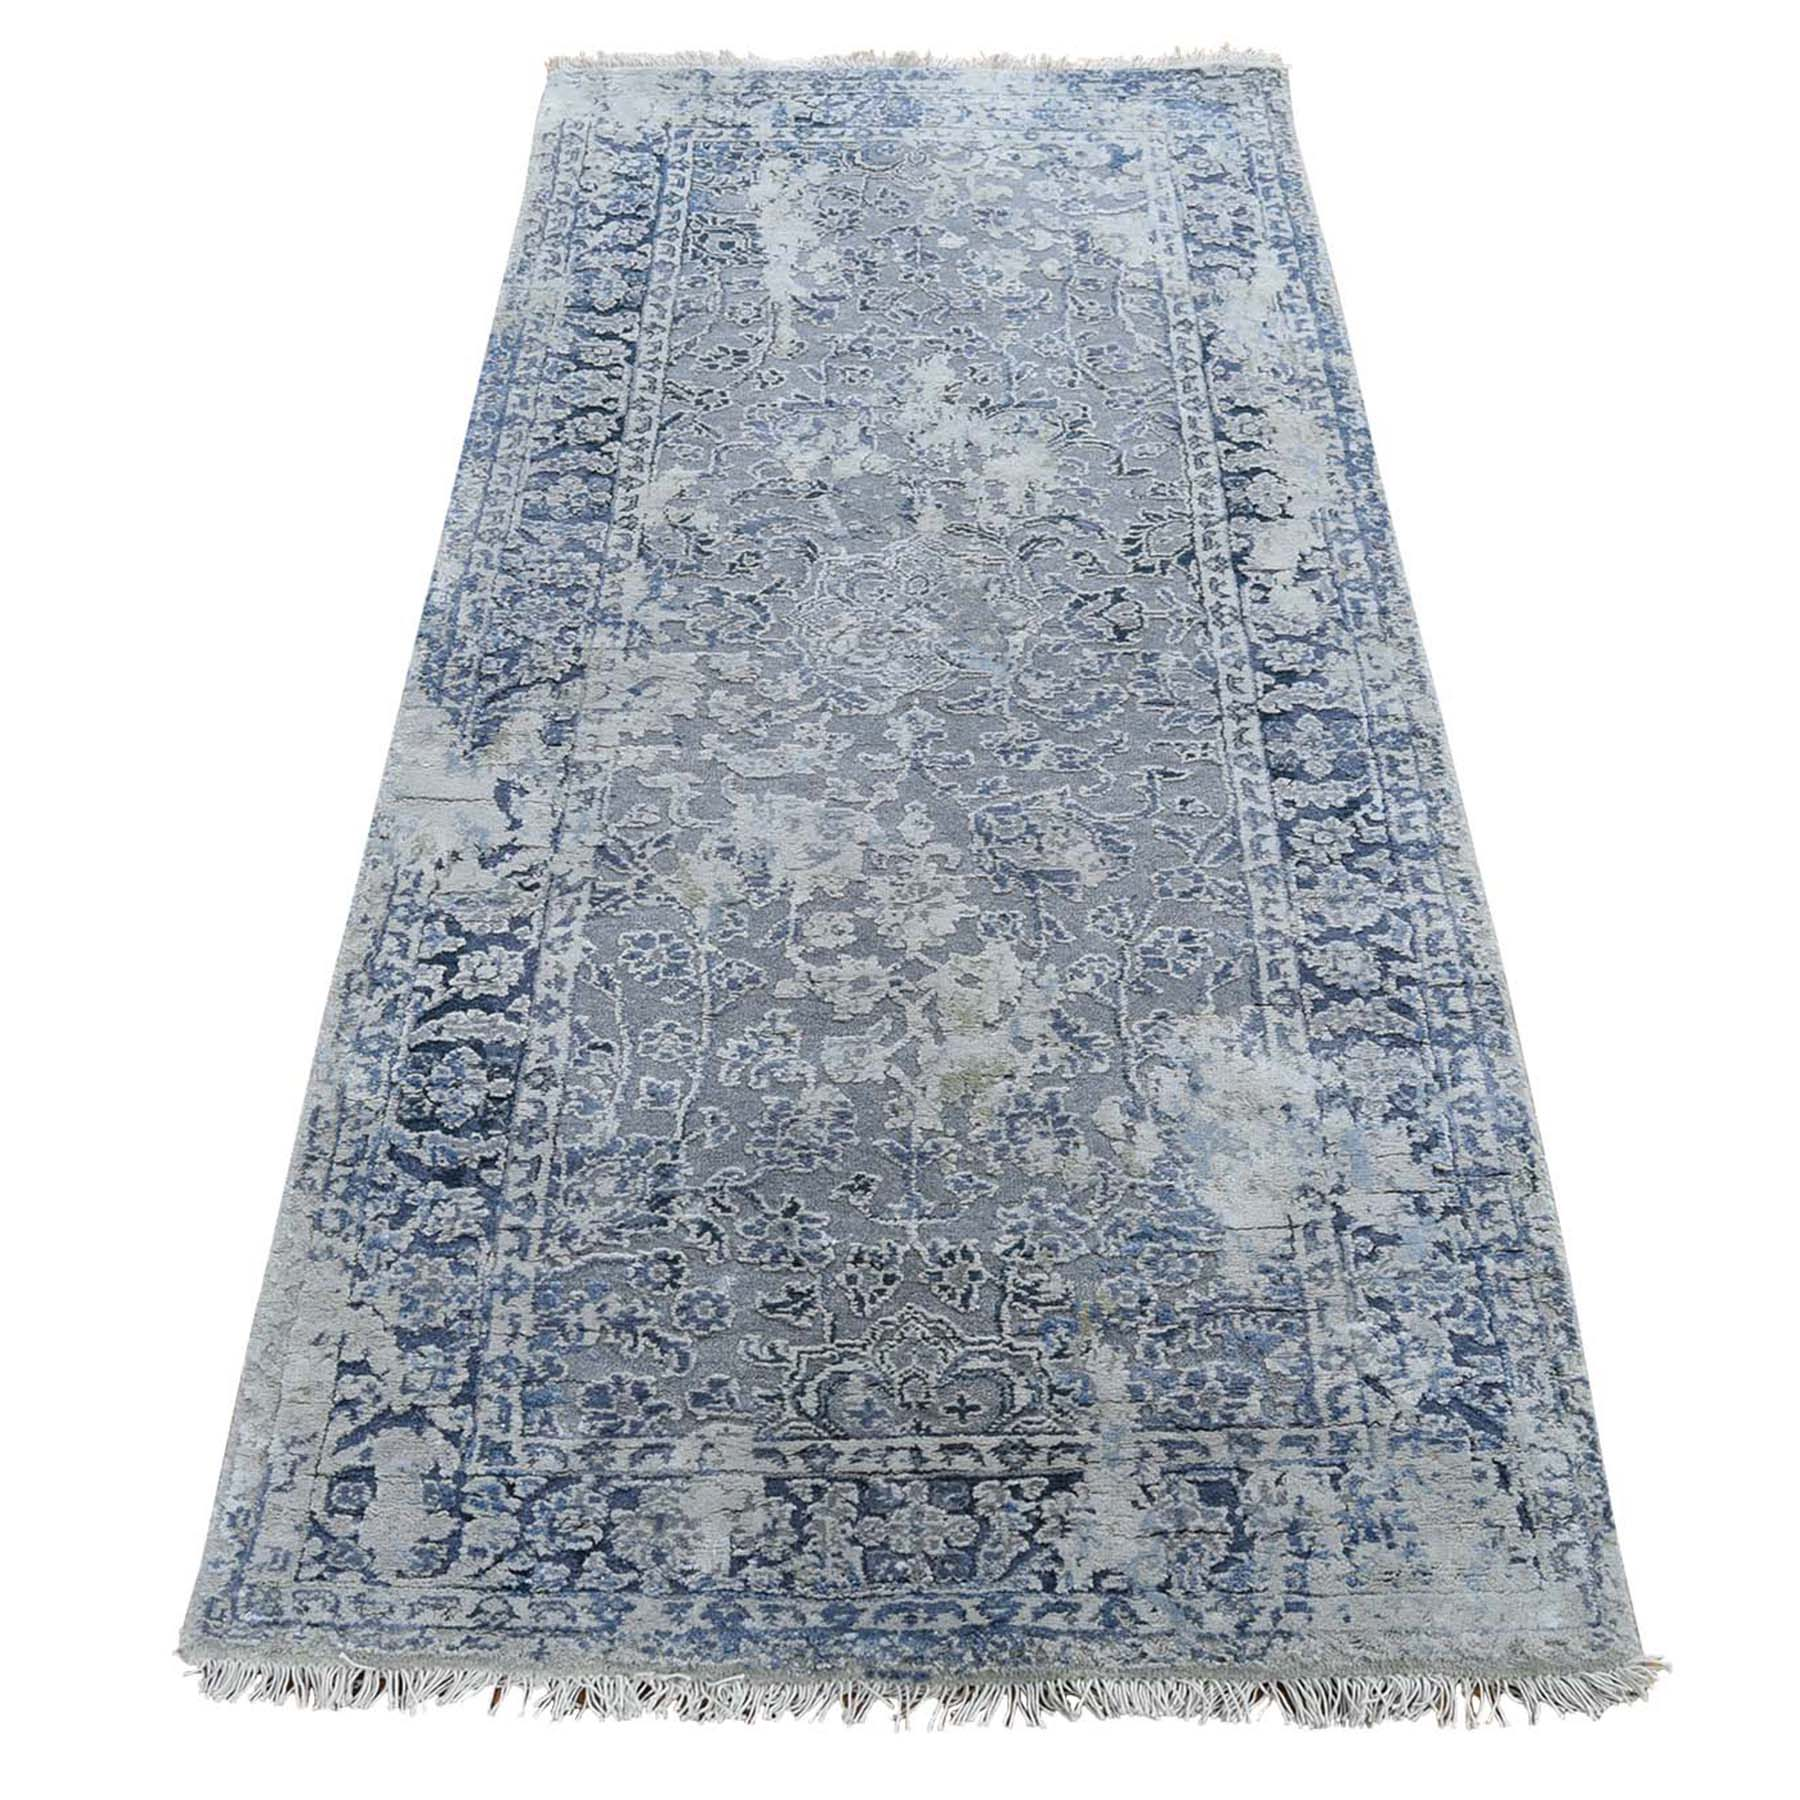 "2'6""x6' Broken Persian Erased Design With Pure Silk Runner Hand-Knotted Oriental Rug"